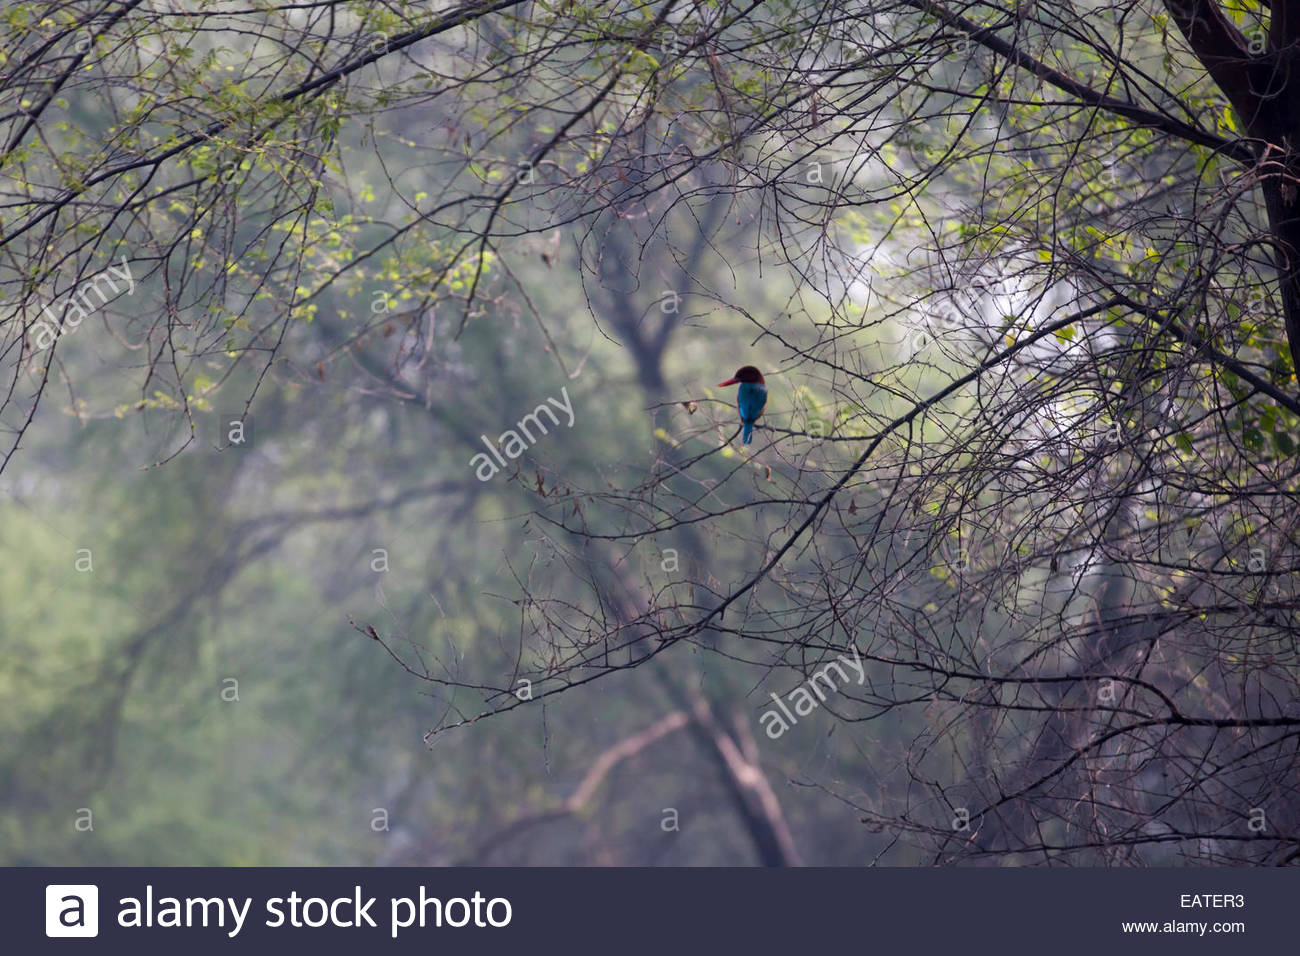 A kingfisher perched high in a tree top. - Stock Image